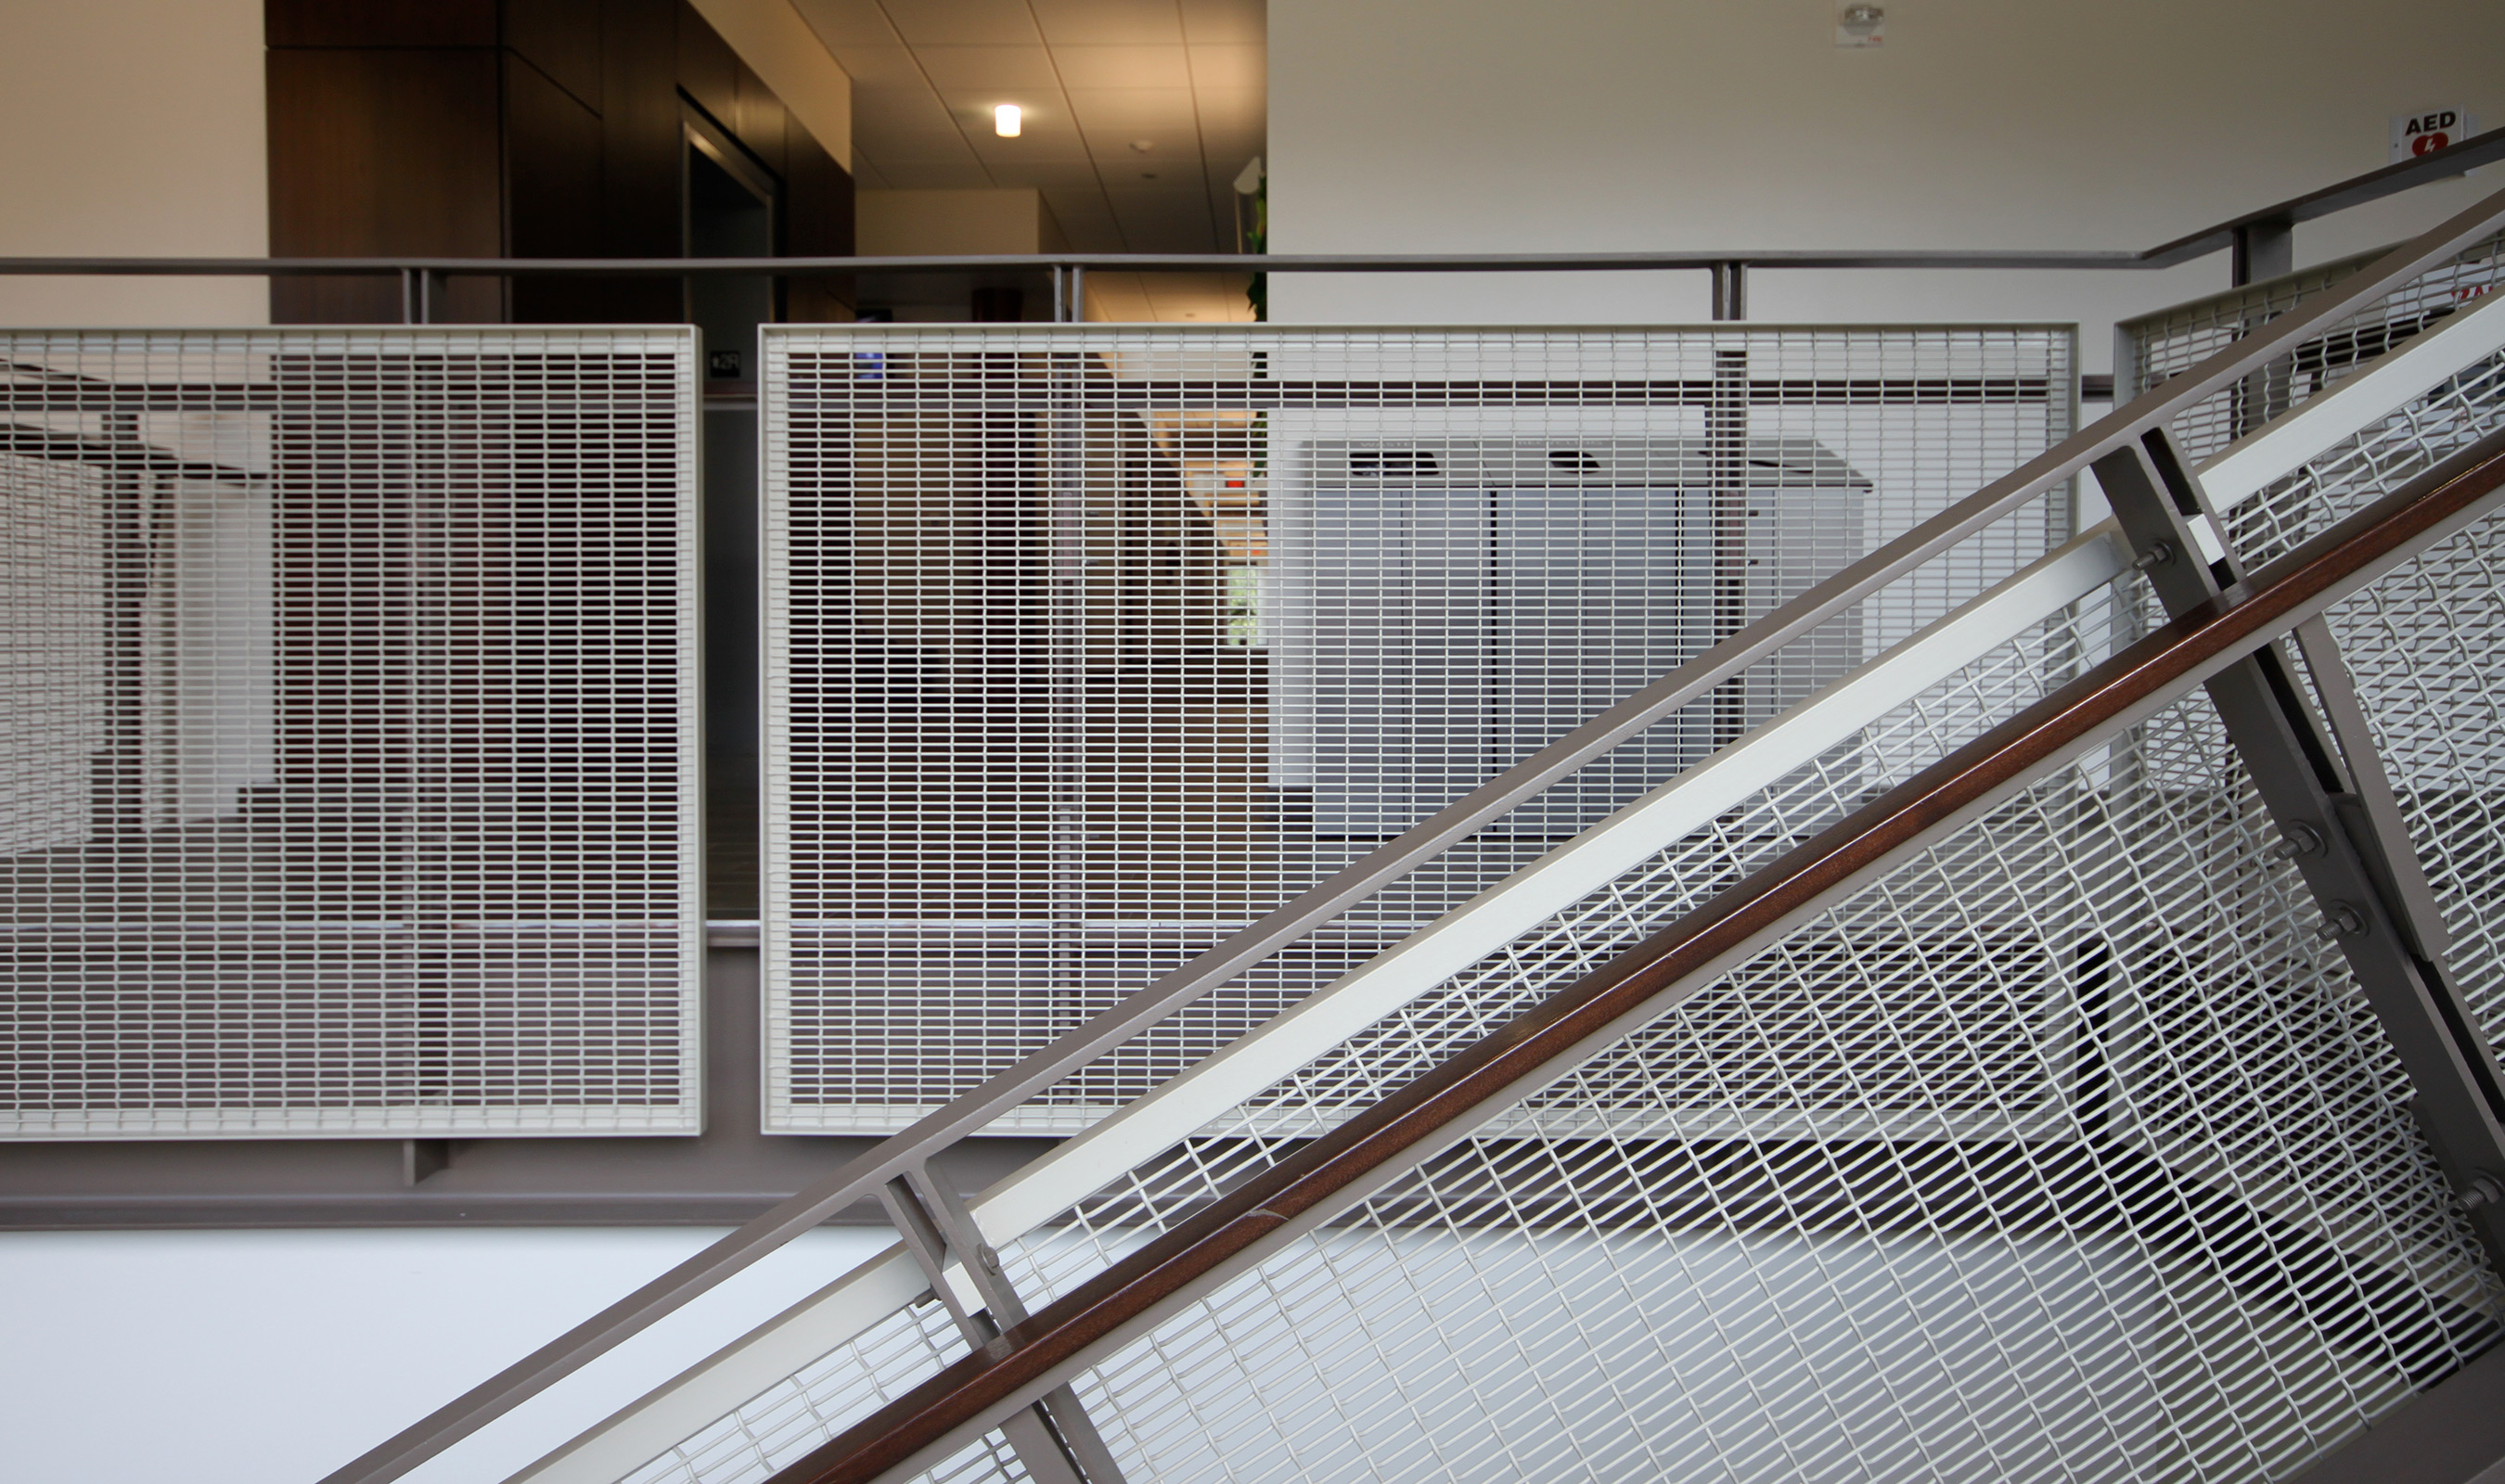 FPZ-16 wire mesh panel framed in angle iron and given white powder coat finish.